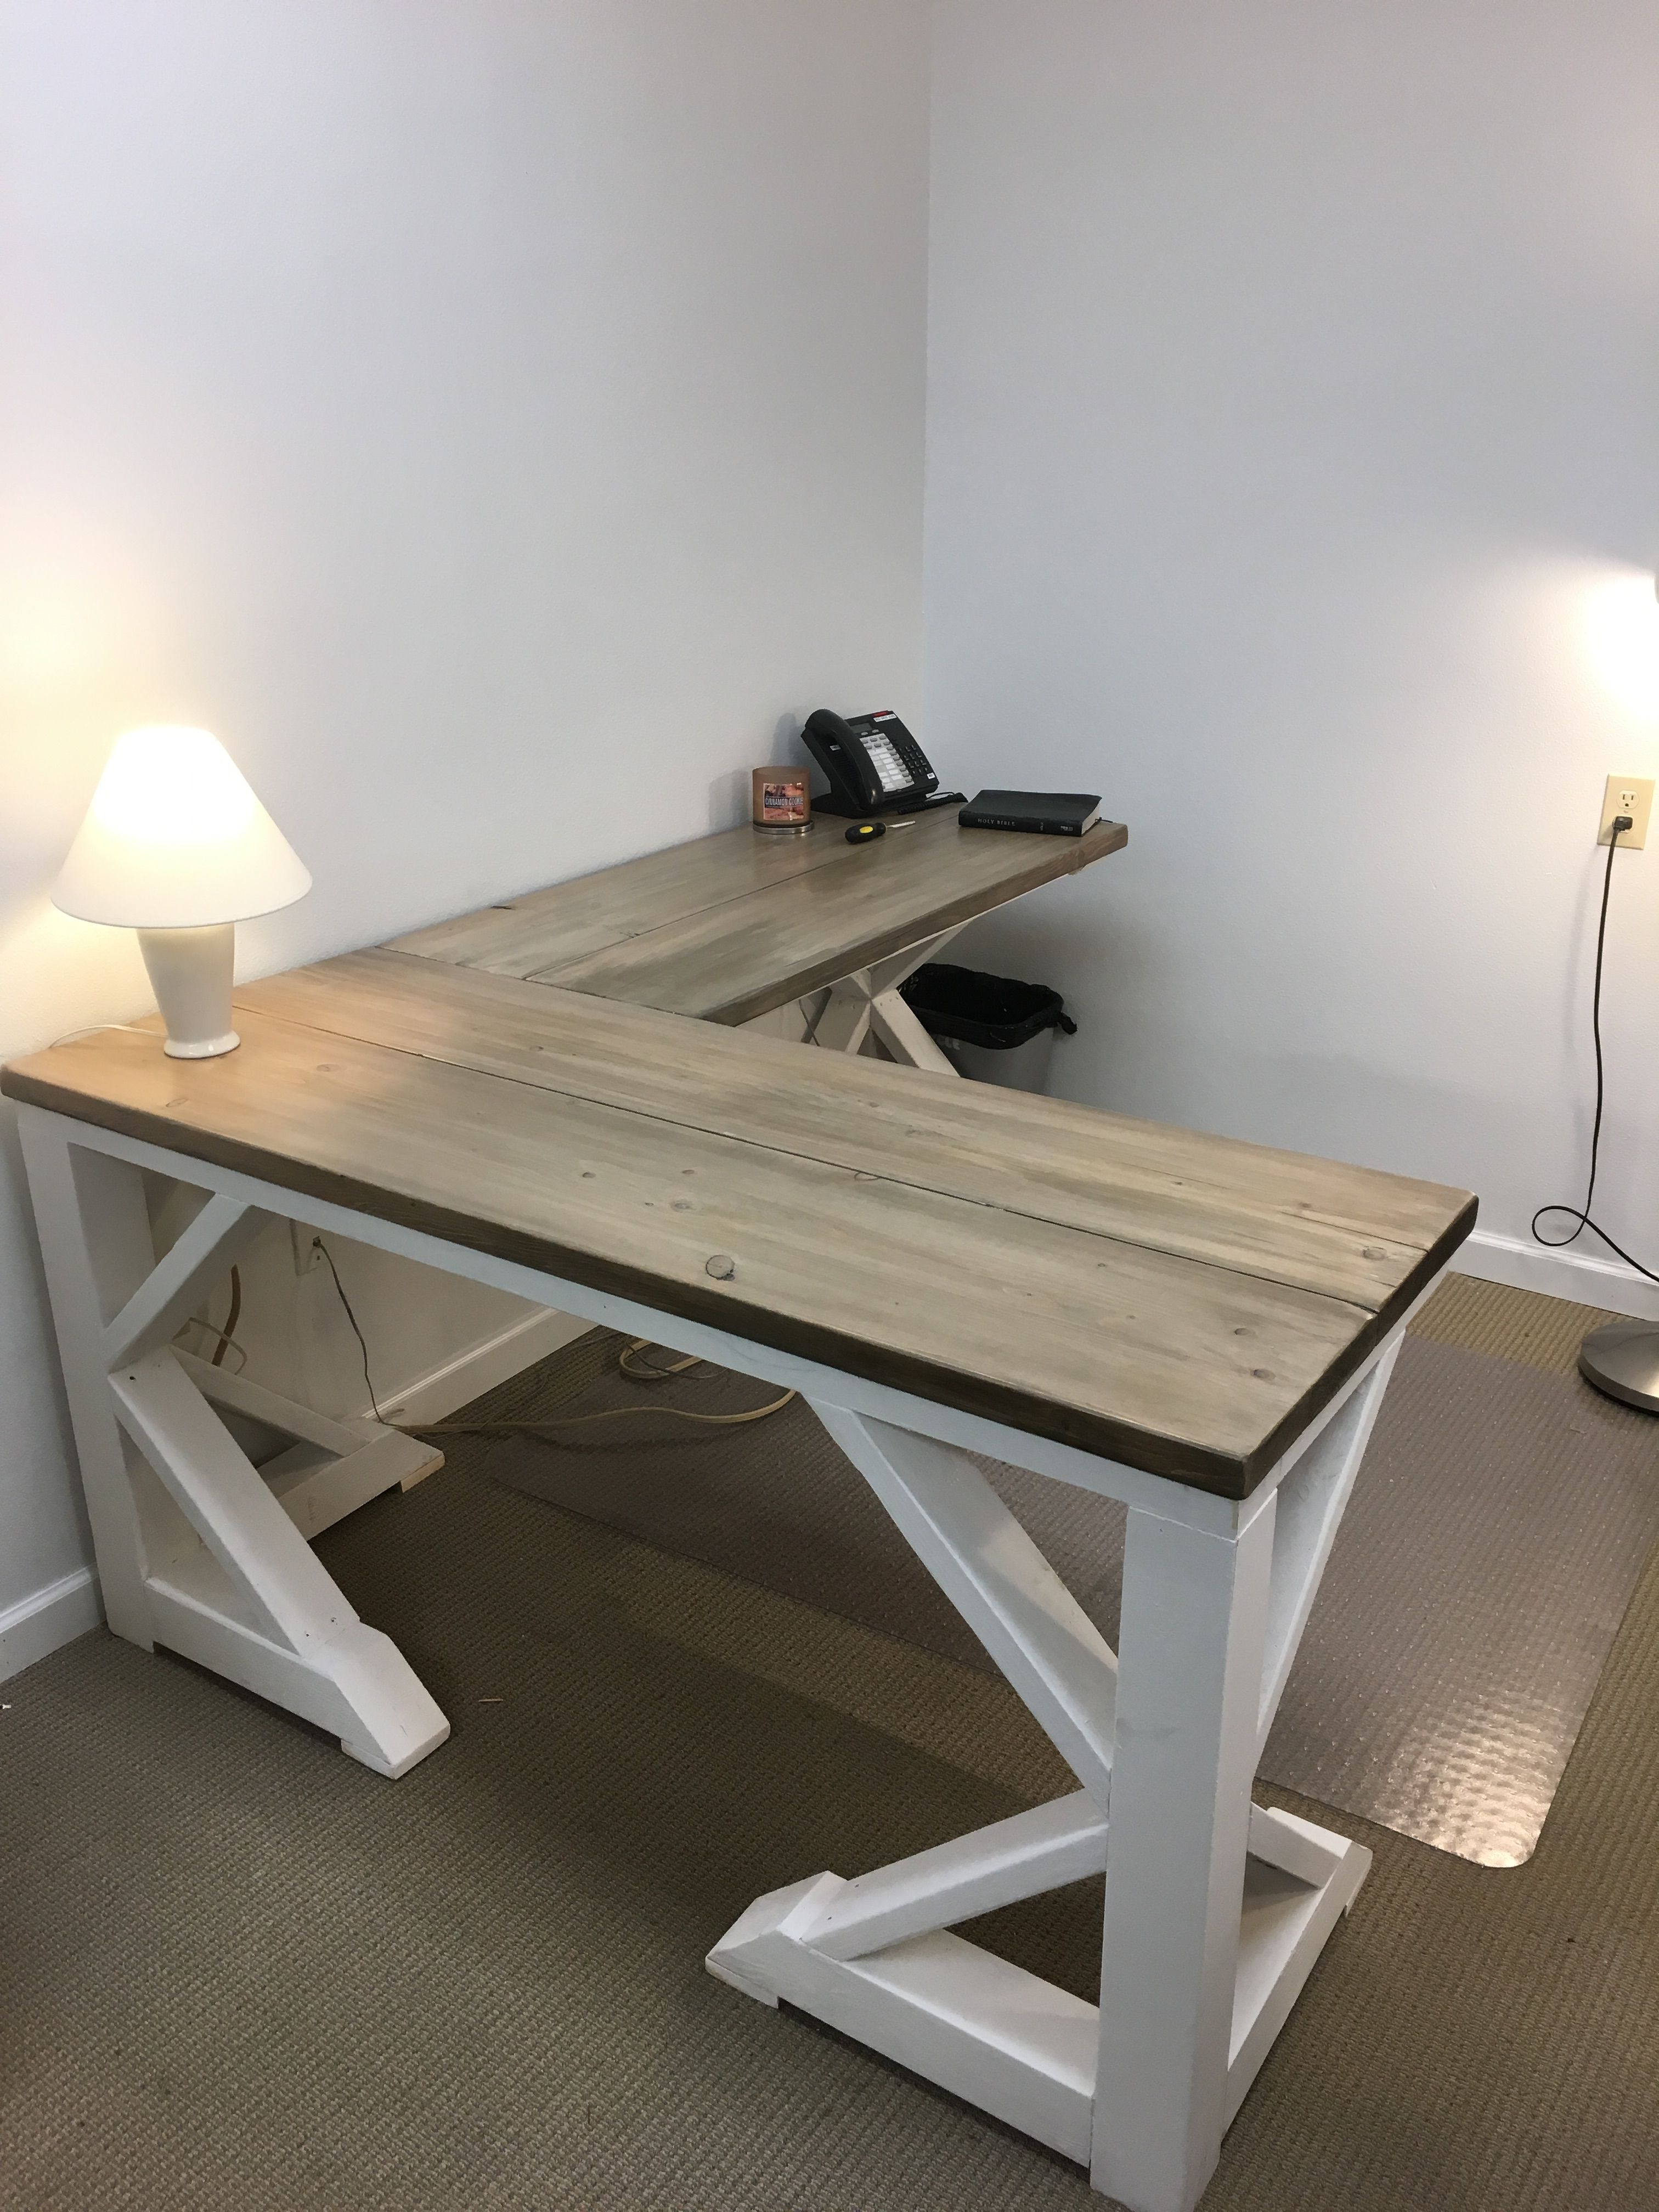 Diy Farmhouse Desk For 75 00